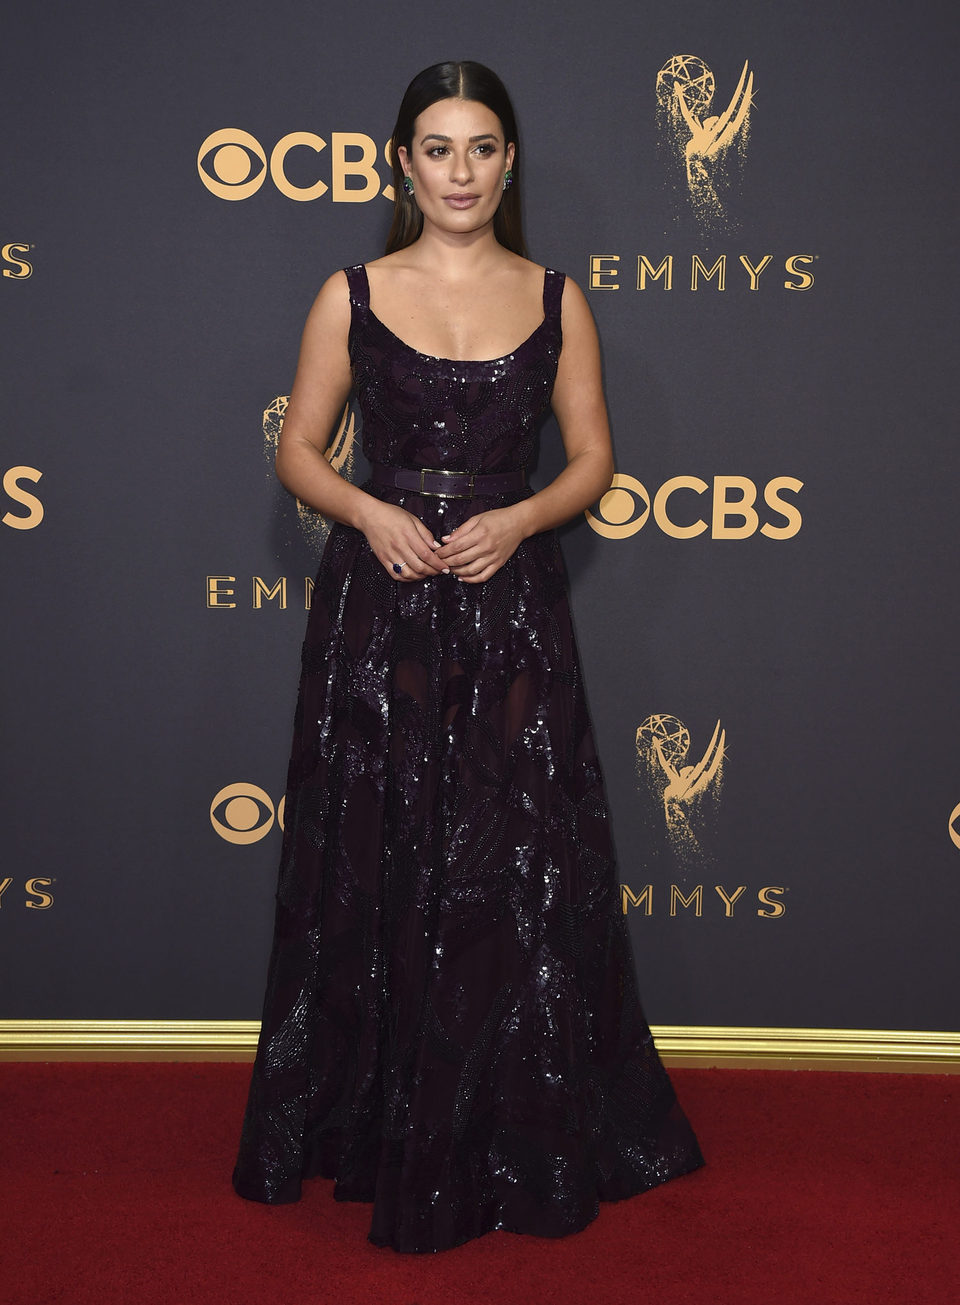 Lea Michele at the Emmys 2017 red carpet